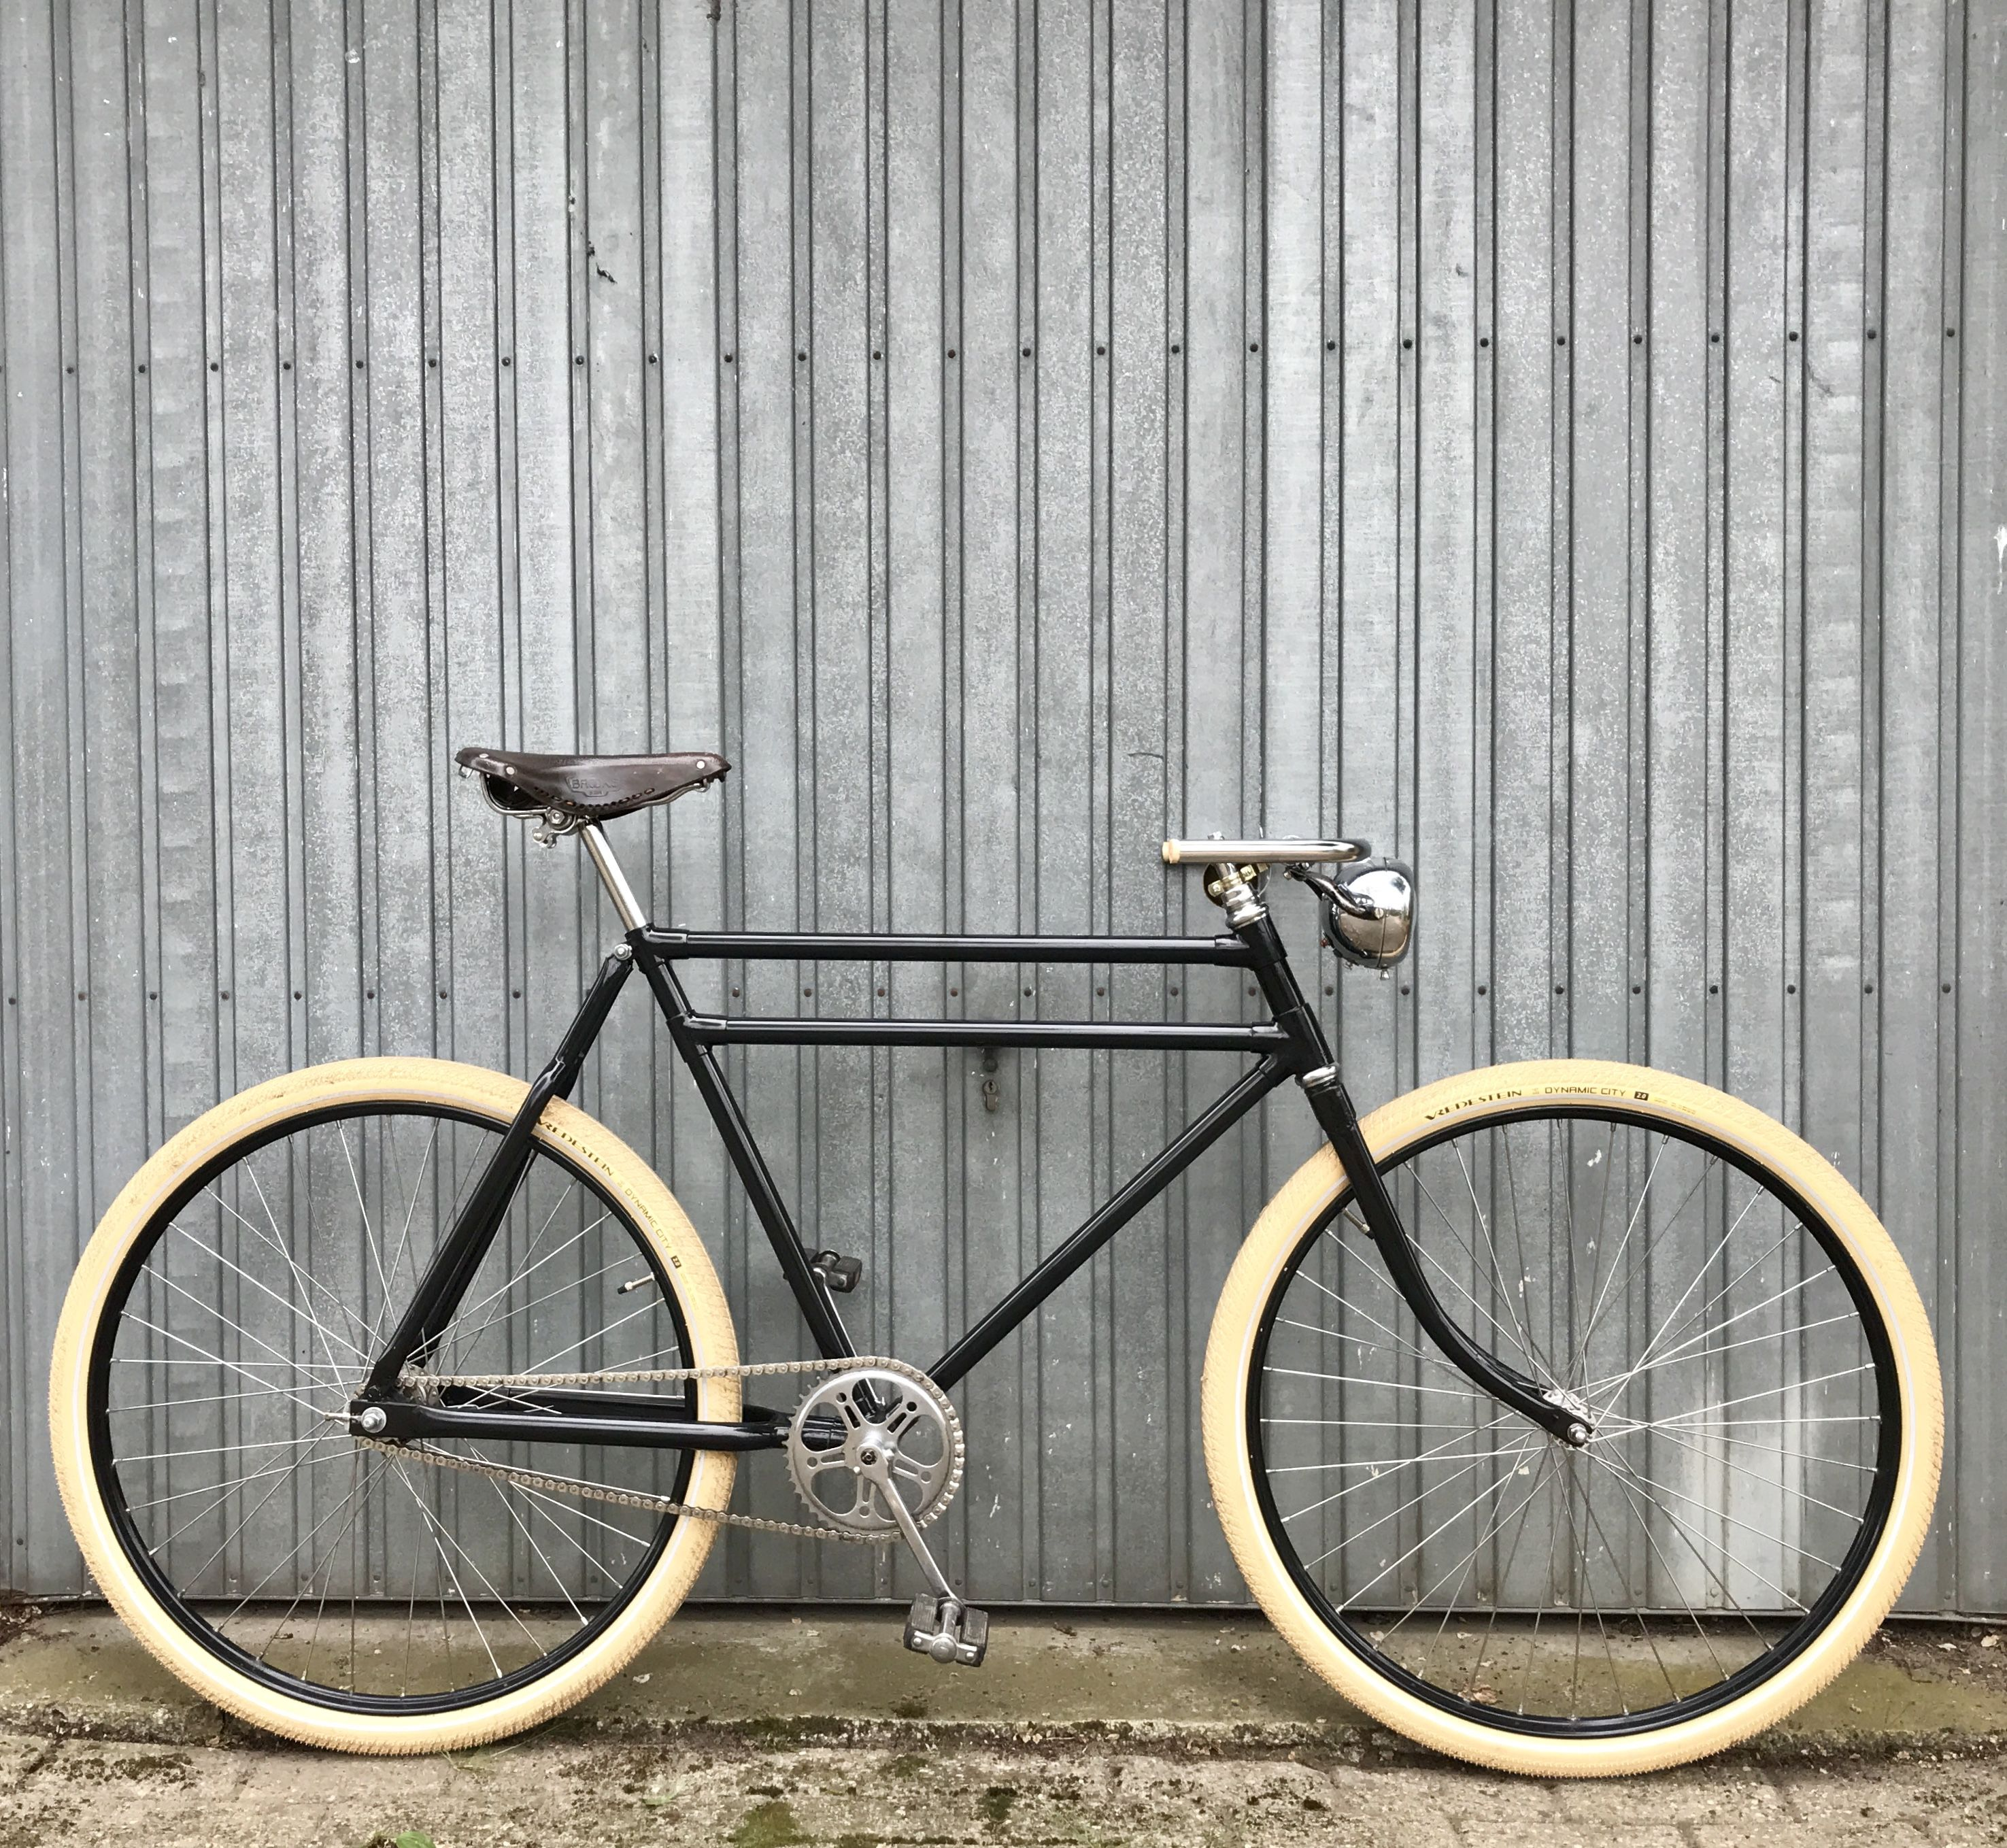 Pin By Dianna Justice On Bicycling Retro Bicycle Vintage Bikes Bike Culture